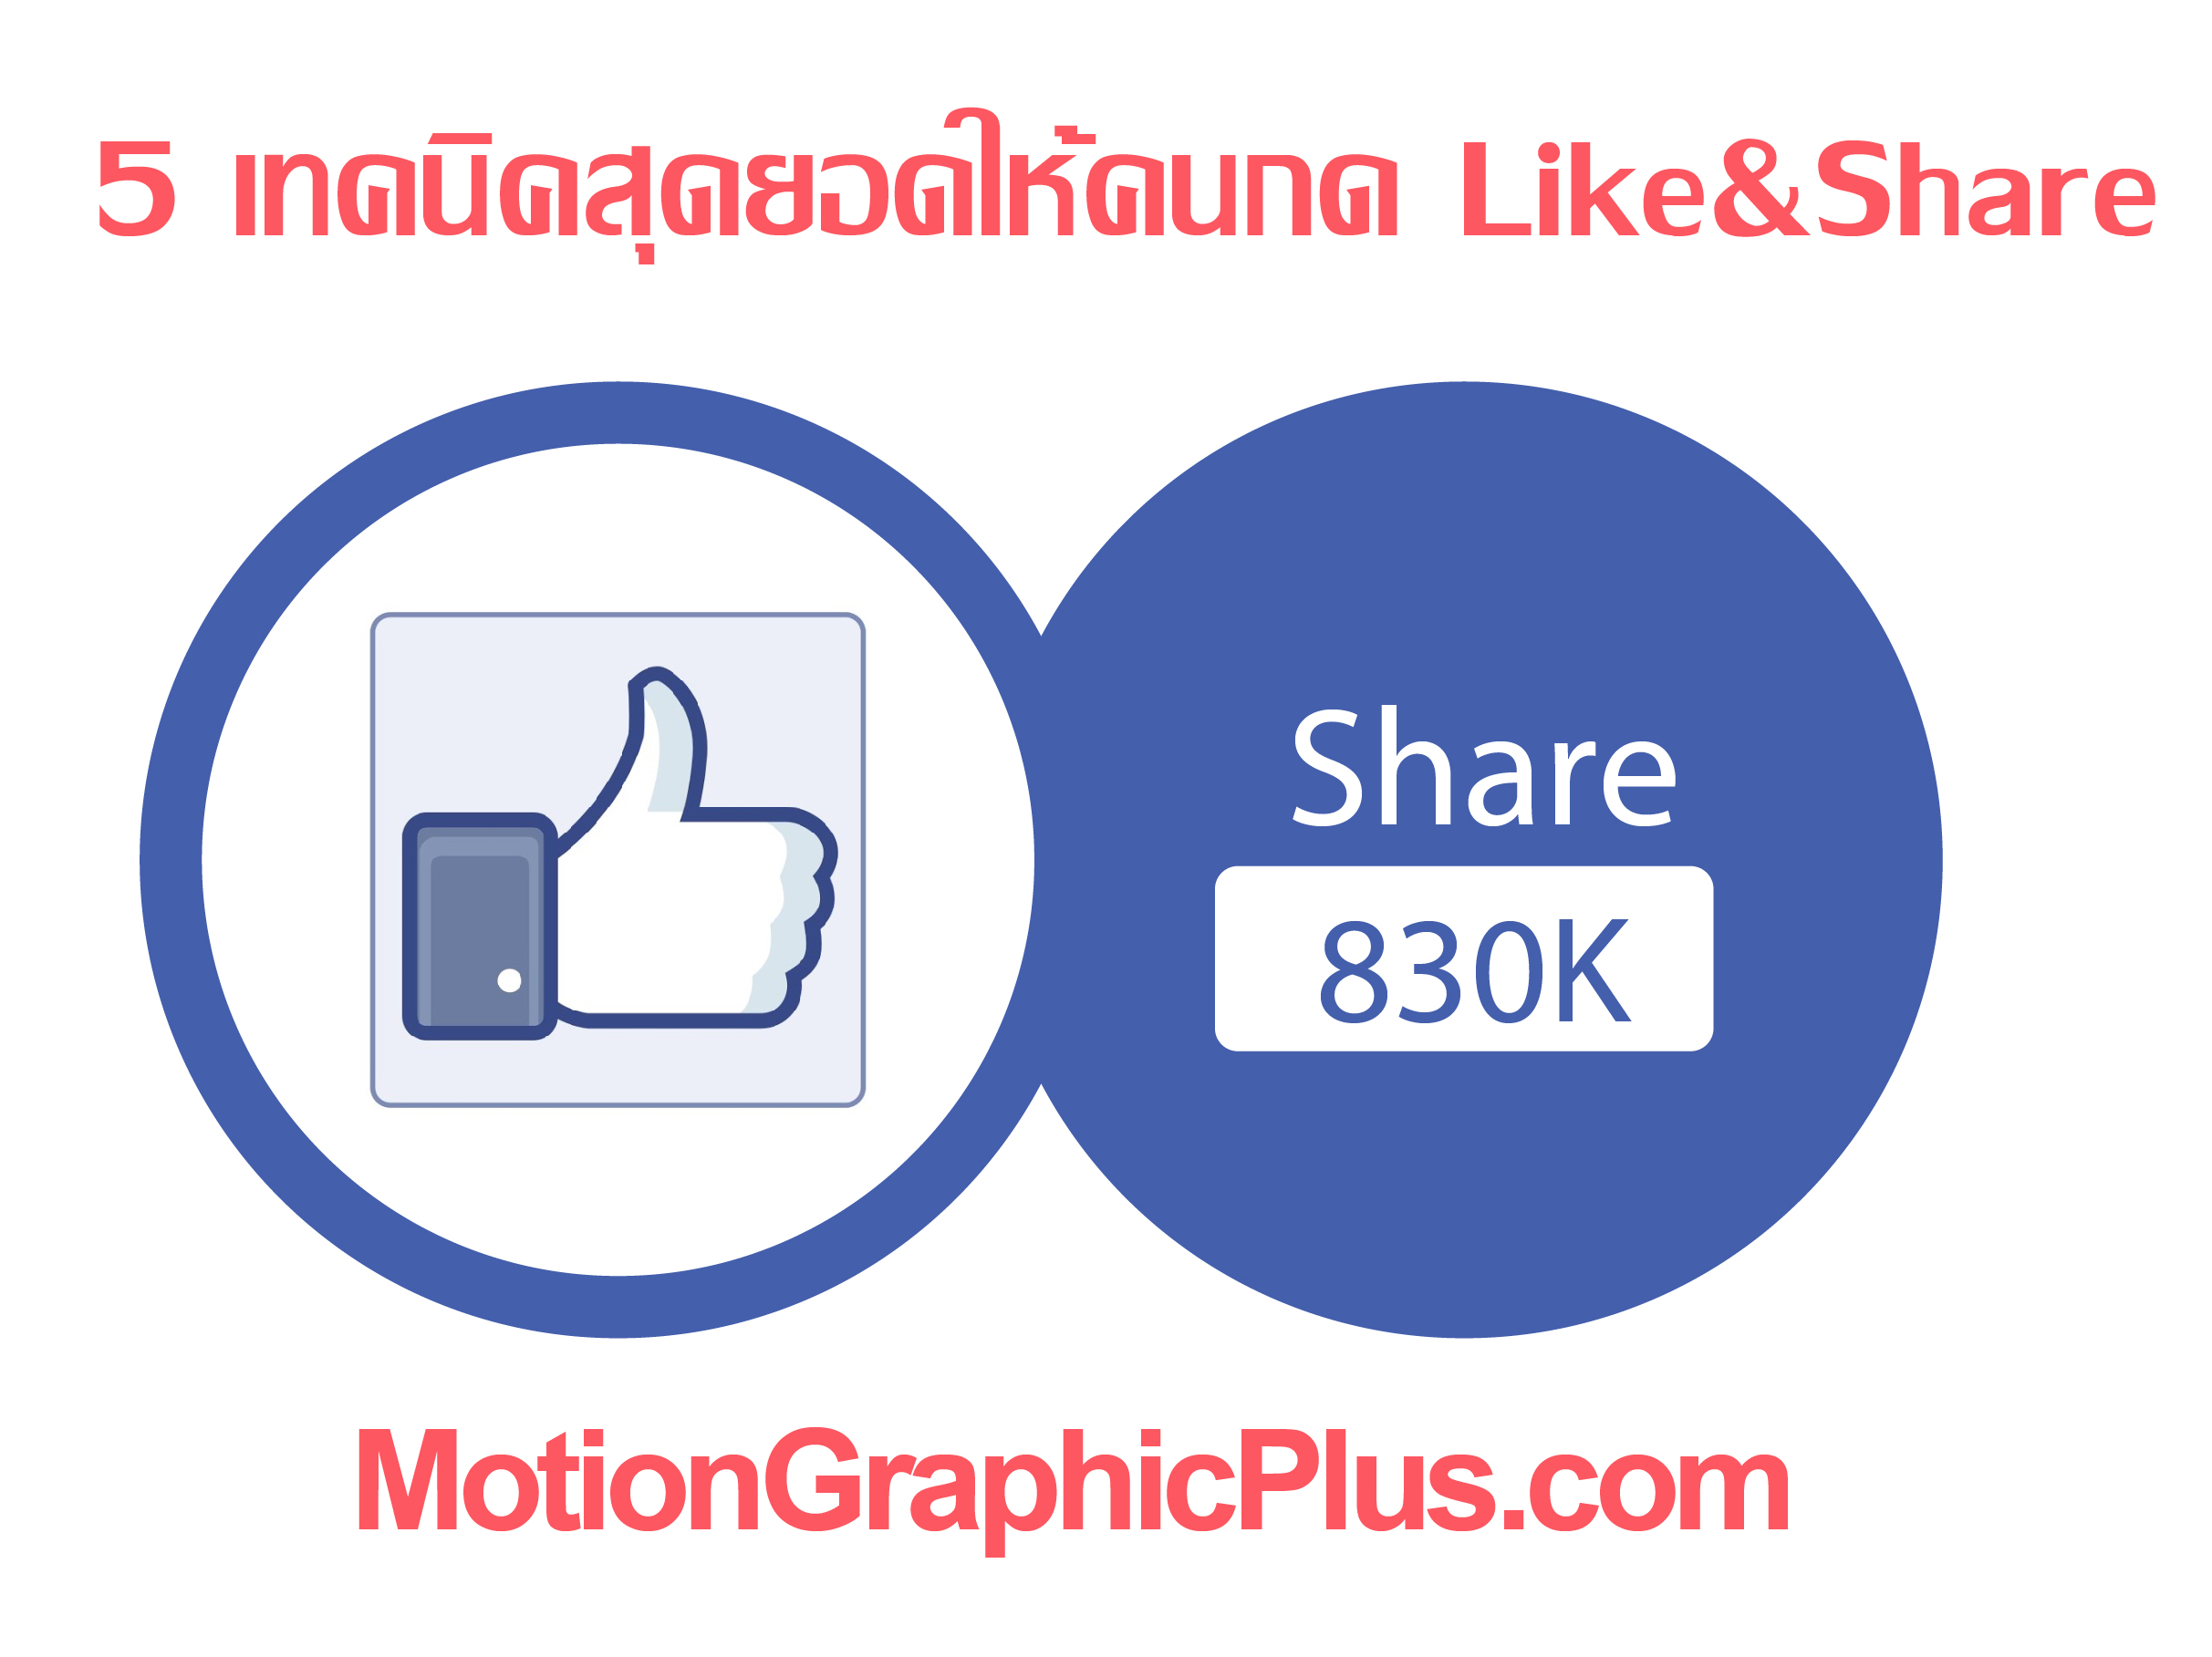 like-facebook-infographic-graphic-design-digital-marketing-online-maketing-motiongraphicplus-01